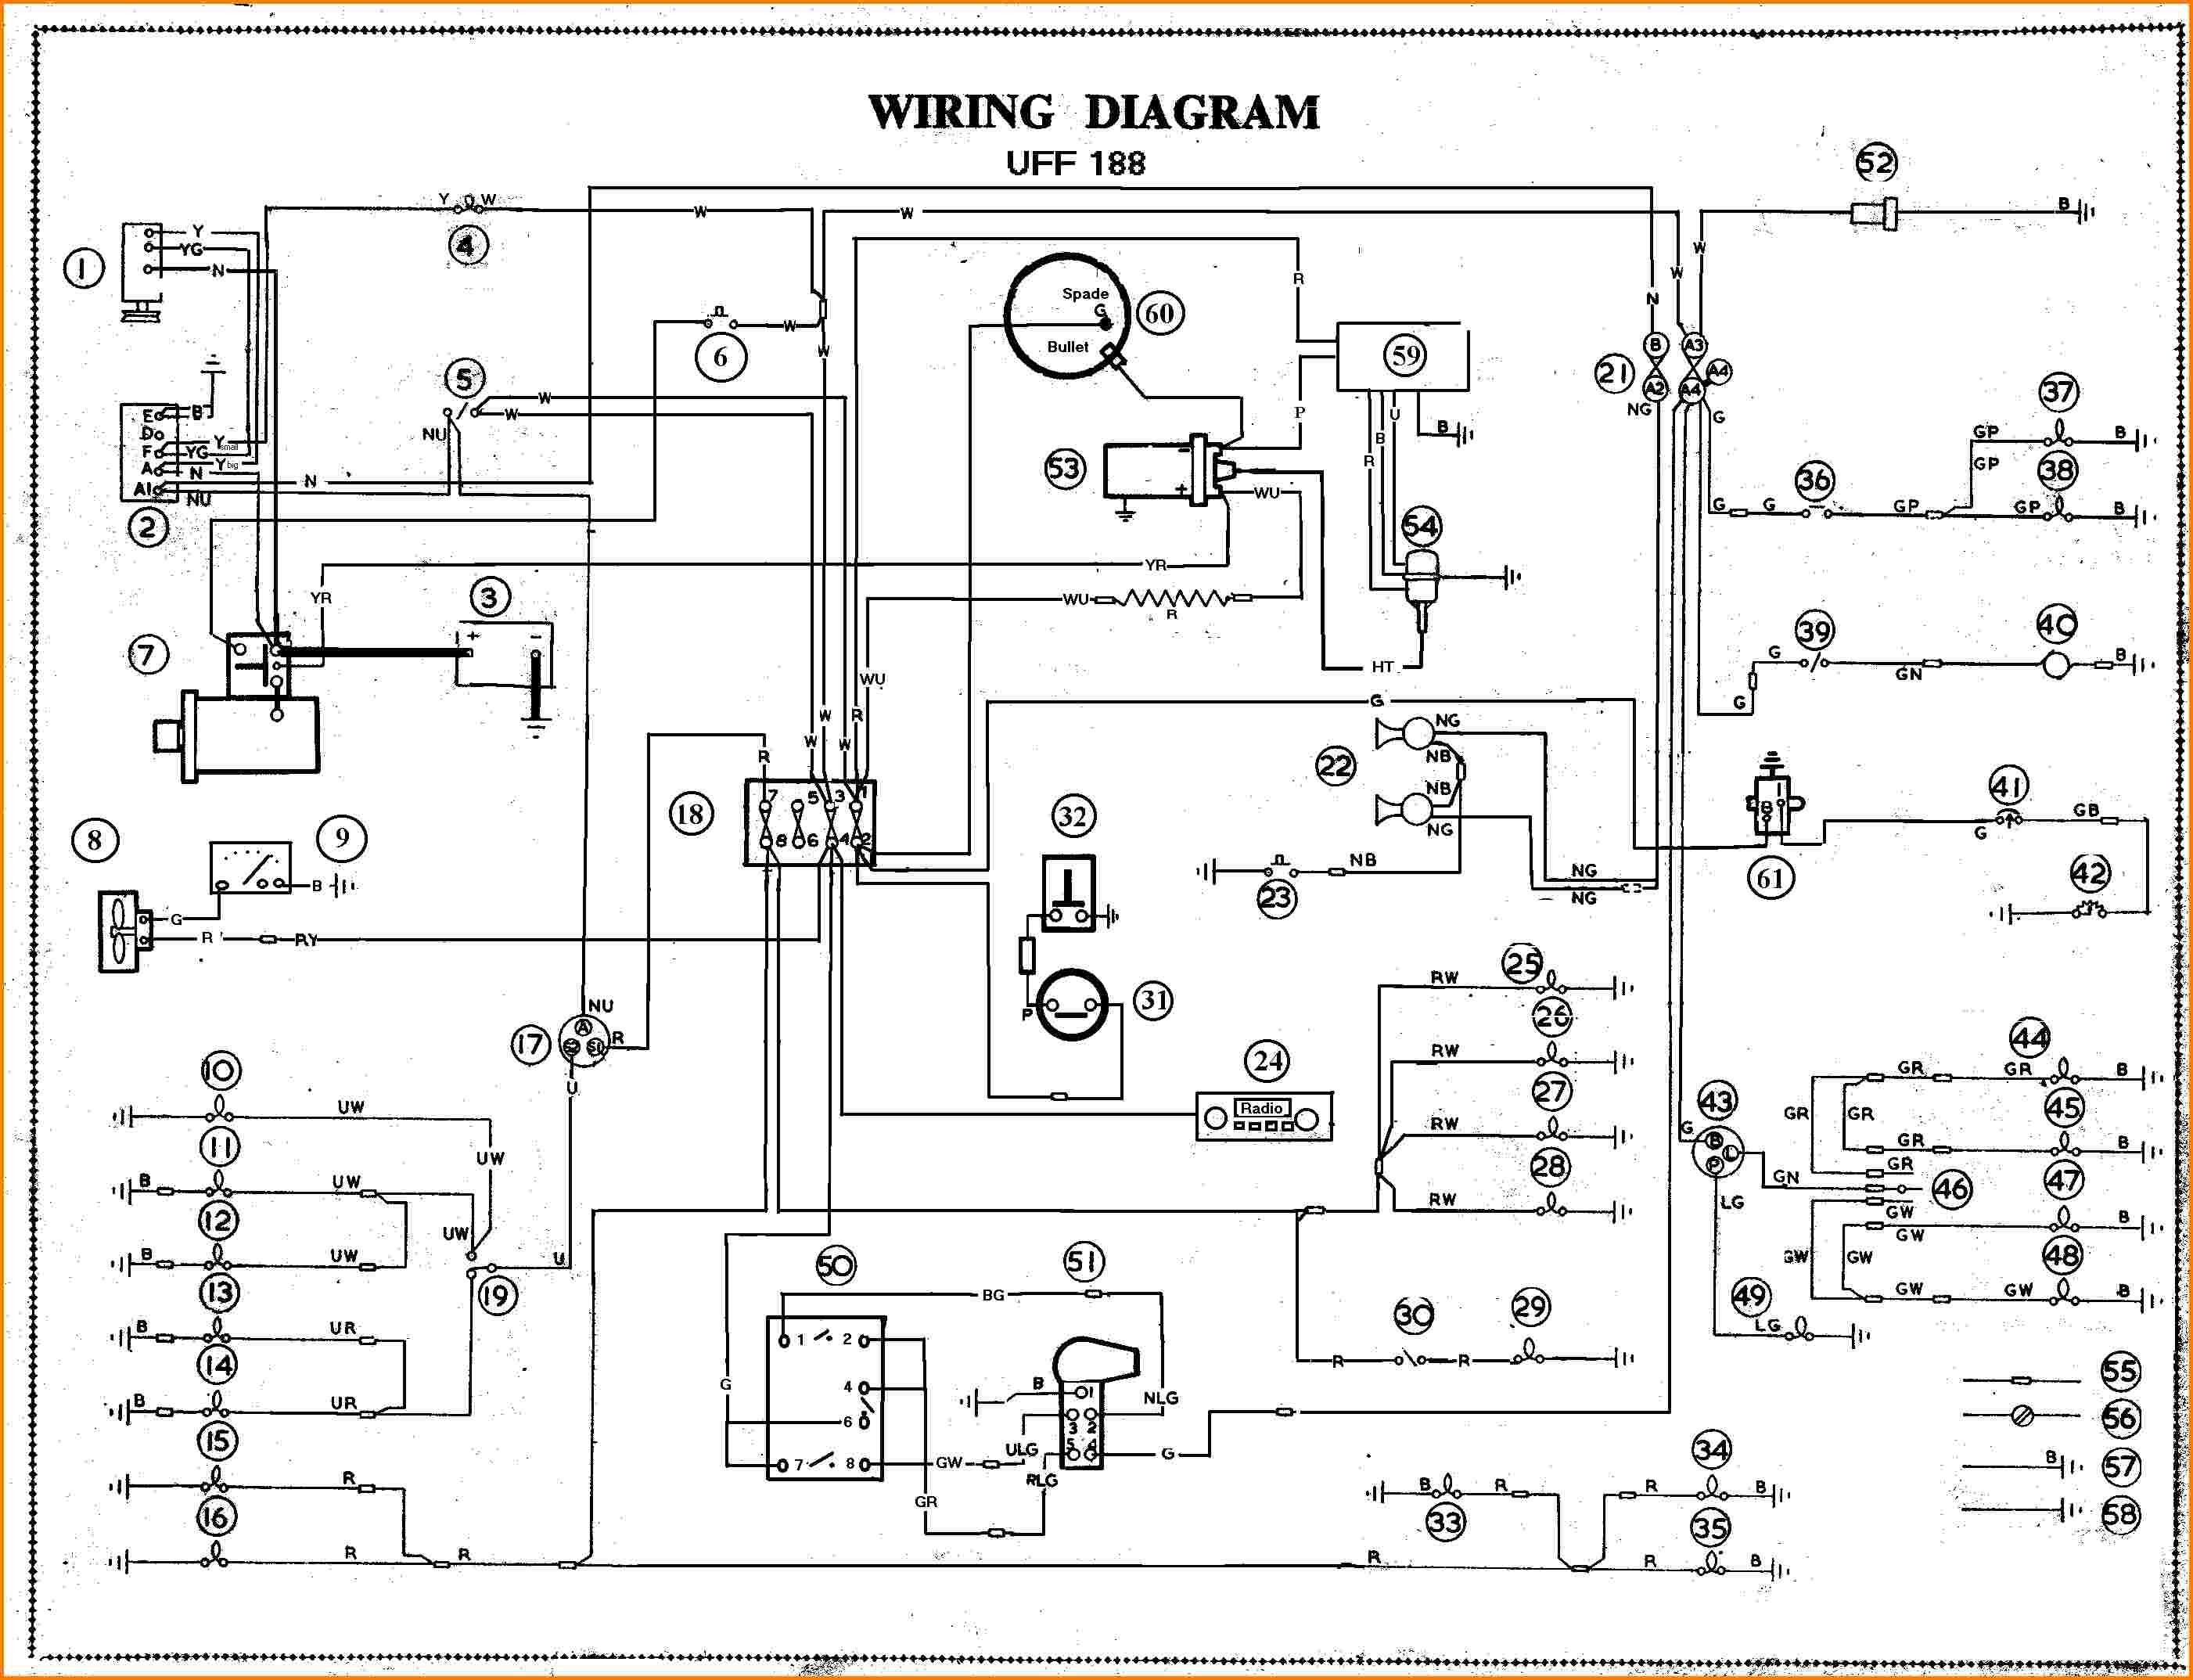 mobile auto wiring diagrams 2010 s10 introduction to electrical rh jillkamil com Lexus LS400 Wiring-Diagram Mobile Auto Wiring Diagrams 2010 S10